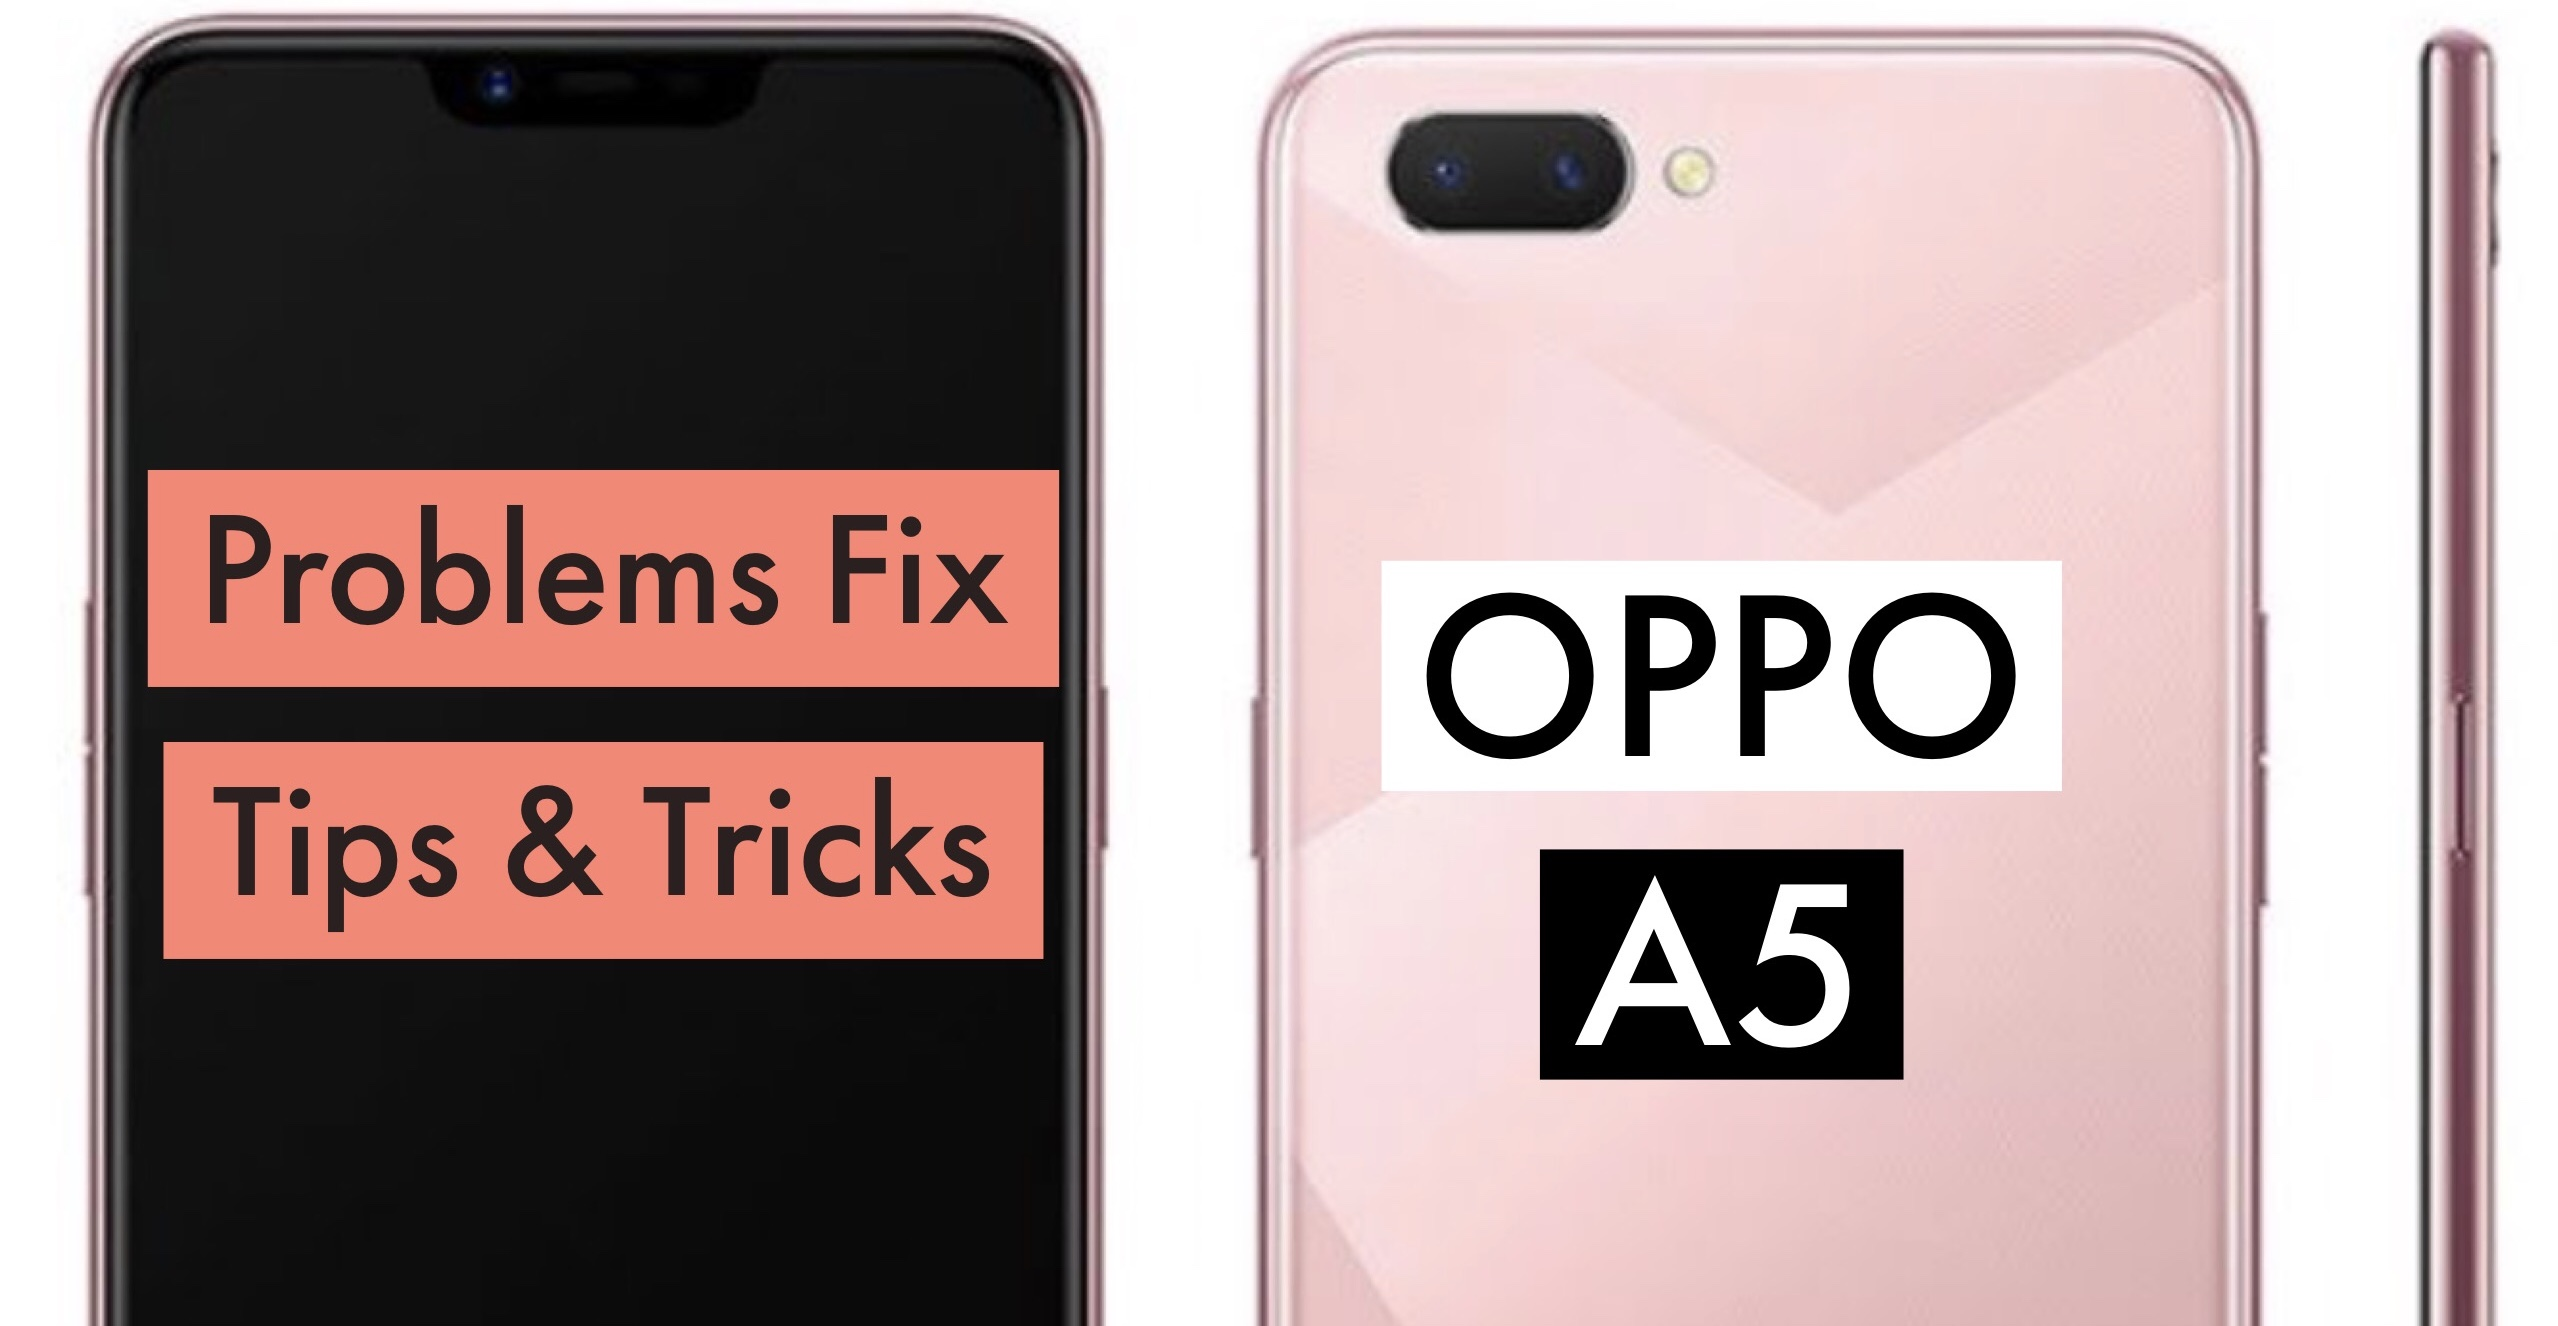 OPPO A5 Most Common Issues & Problems + Solution Fix: TIPS & TRICKS!